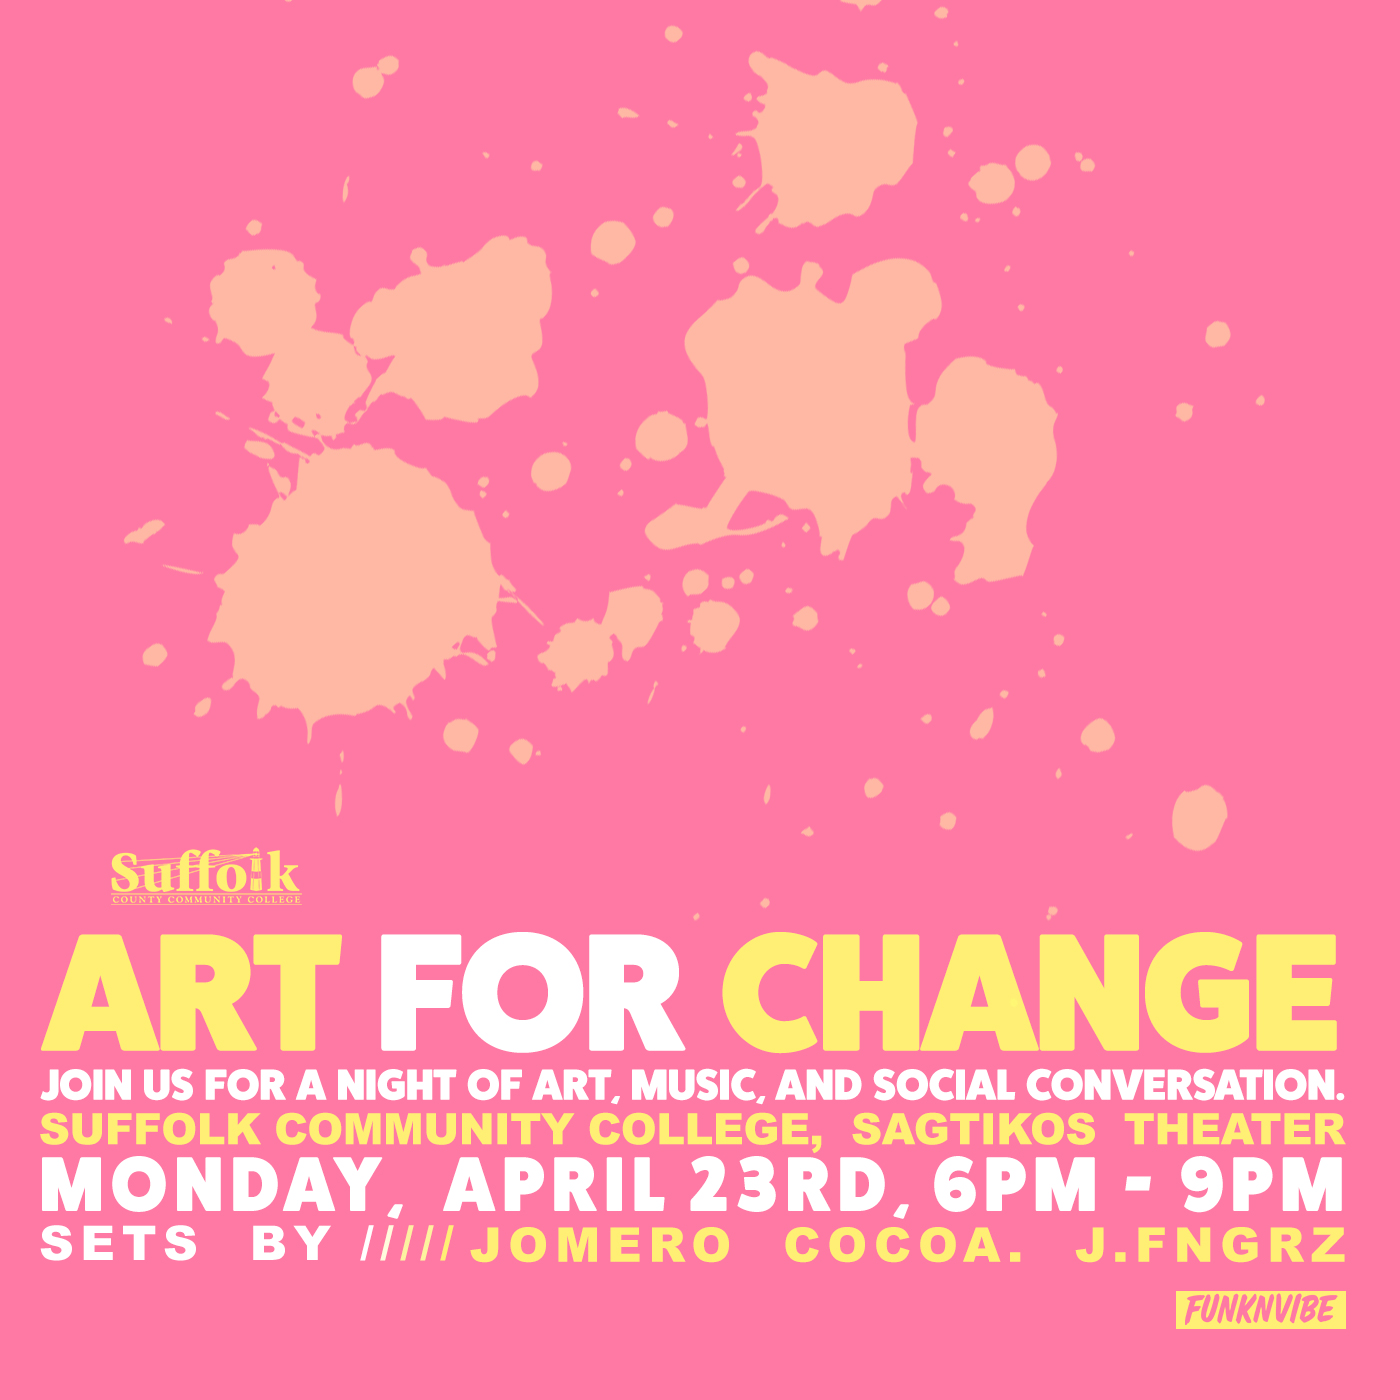 """""""Art for Change""""  is a week long festival being held at the  Grant Campus, Sagtikos Theater, in Suffolk County Community College . Opening day takes place on  Monday, April 23rd , where  Jomero, Cocoa, and J.FNGRZ  will be providing the sounds in the lobby area. Various works of Art will be on display, all pushing a message of social change in the community.In addition, we have  FunknVibe artist, Jack Cox,  displaying a few exclusive pieces by our booth! You won't want to miss out on this opportunity to connect with likeminded individuals, see you there.  All ages are welcomed, free entry."""